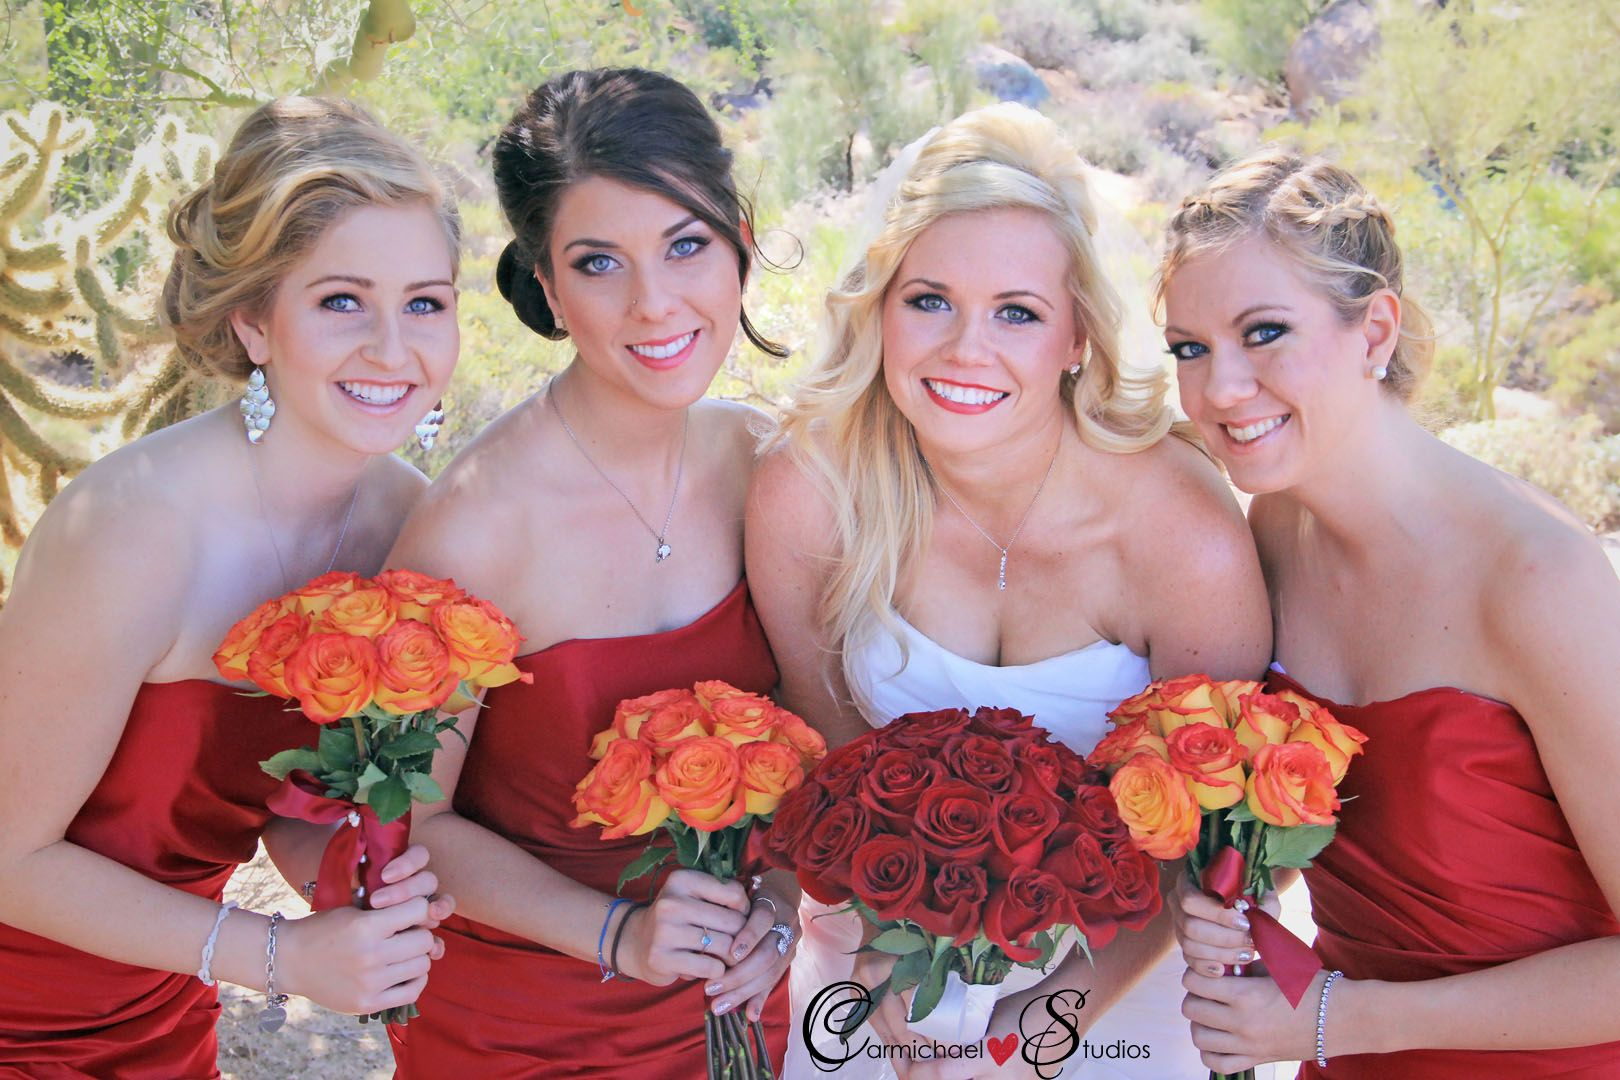 Red and orange wedding colors red bridesmaids dress scottsdale red and orange wedding colors red bridesmaids dress scottsdale wedding photography troon north ombrellifo Choice Image